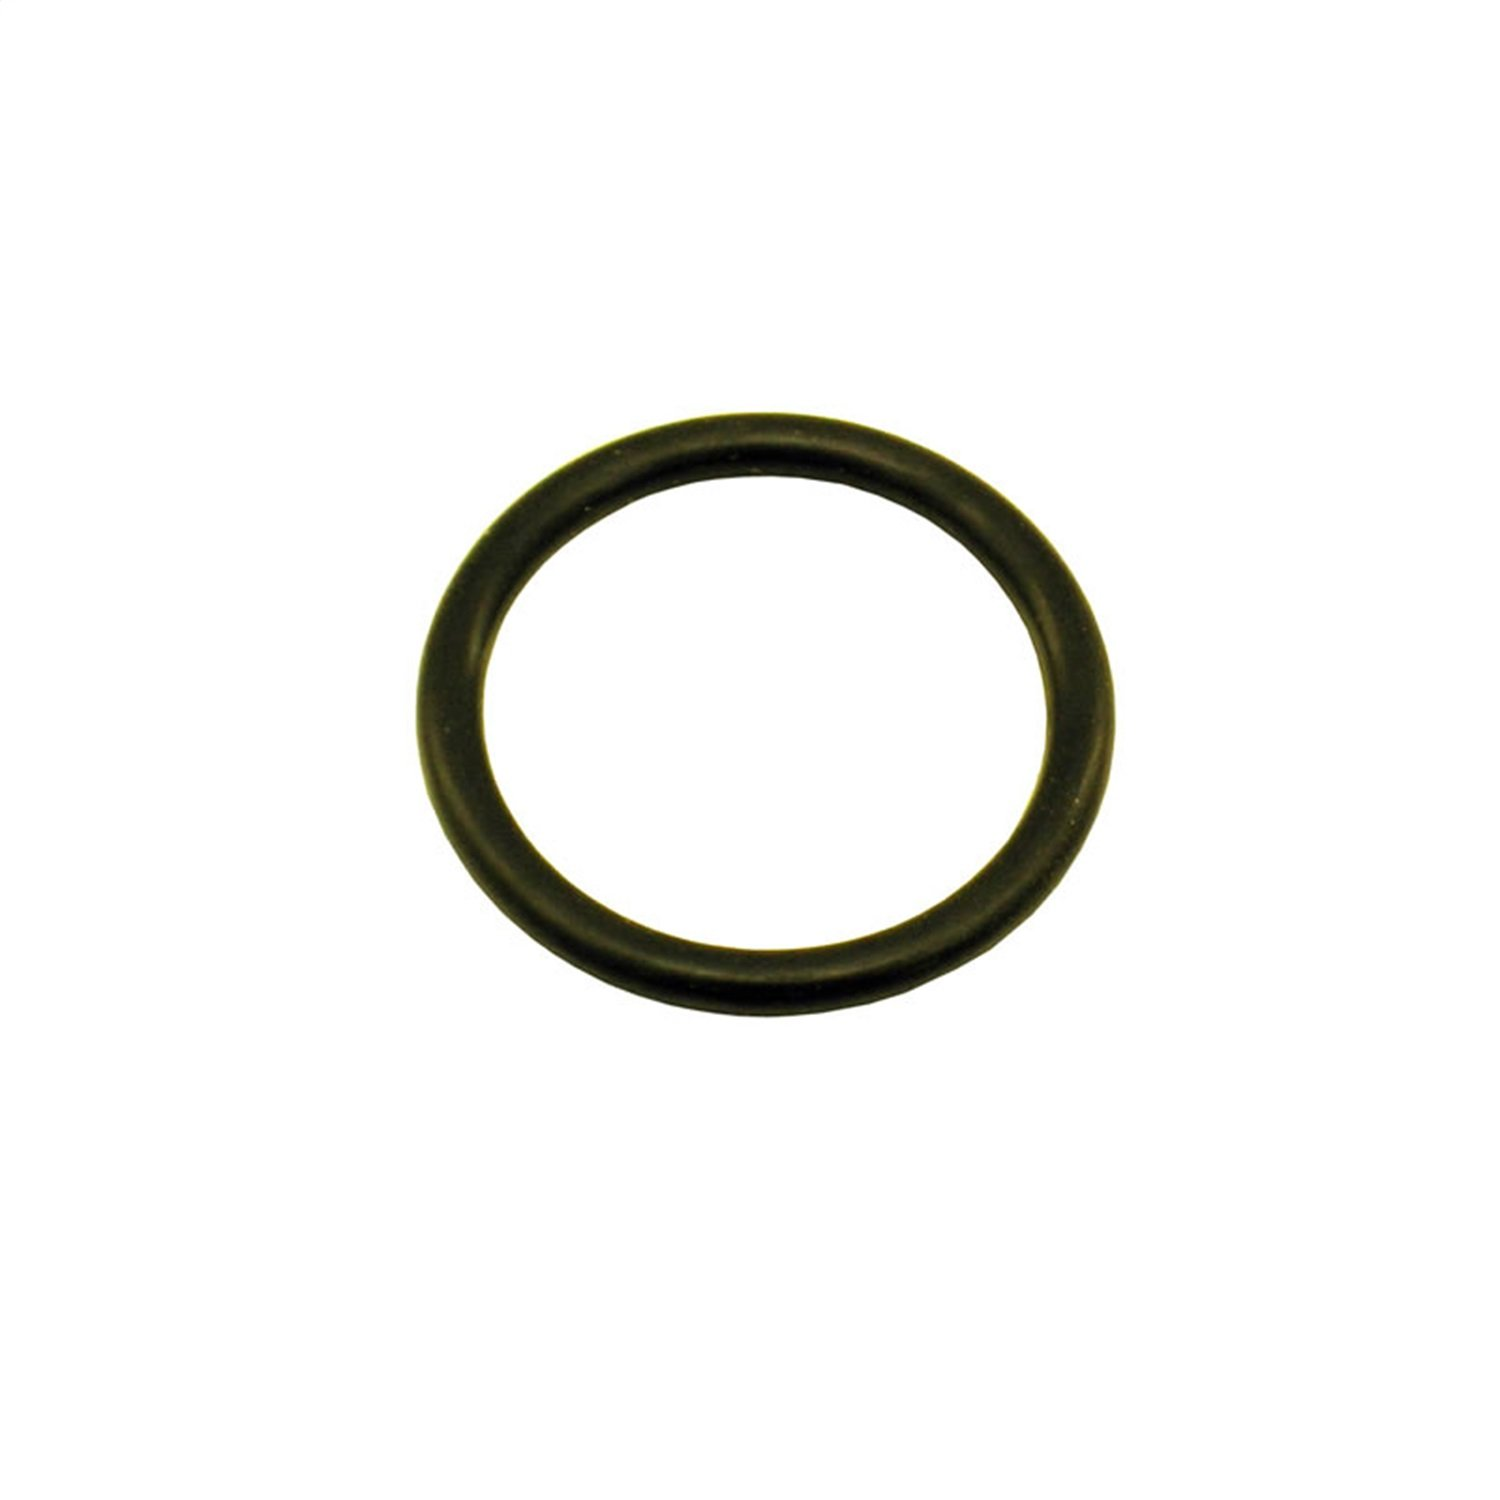 Nitrous Express 11027 3/4' O-Ring for Motorcycle Bottle Valve